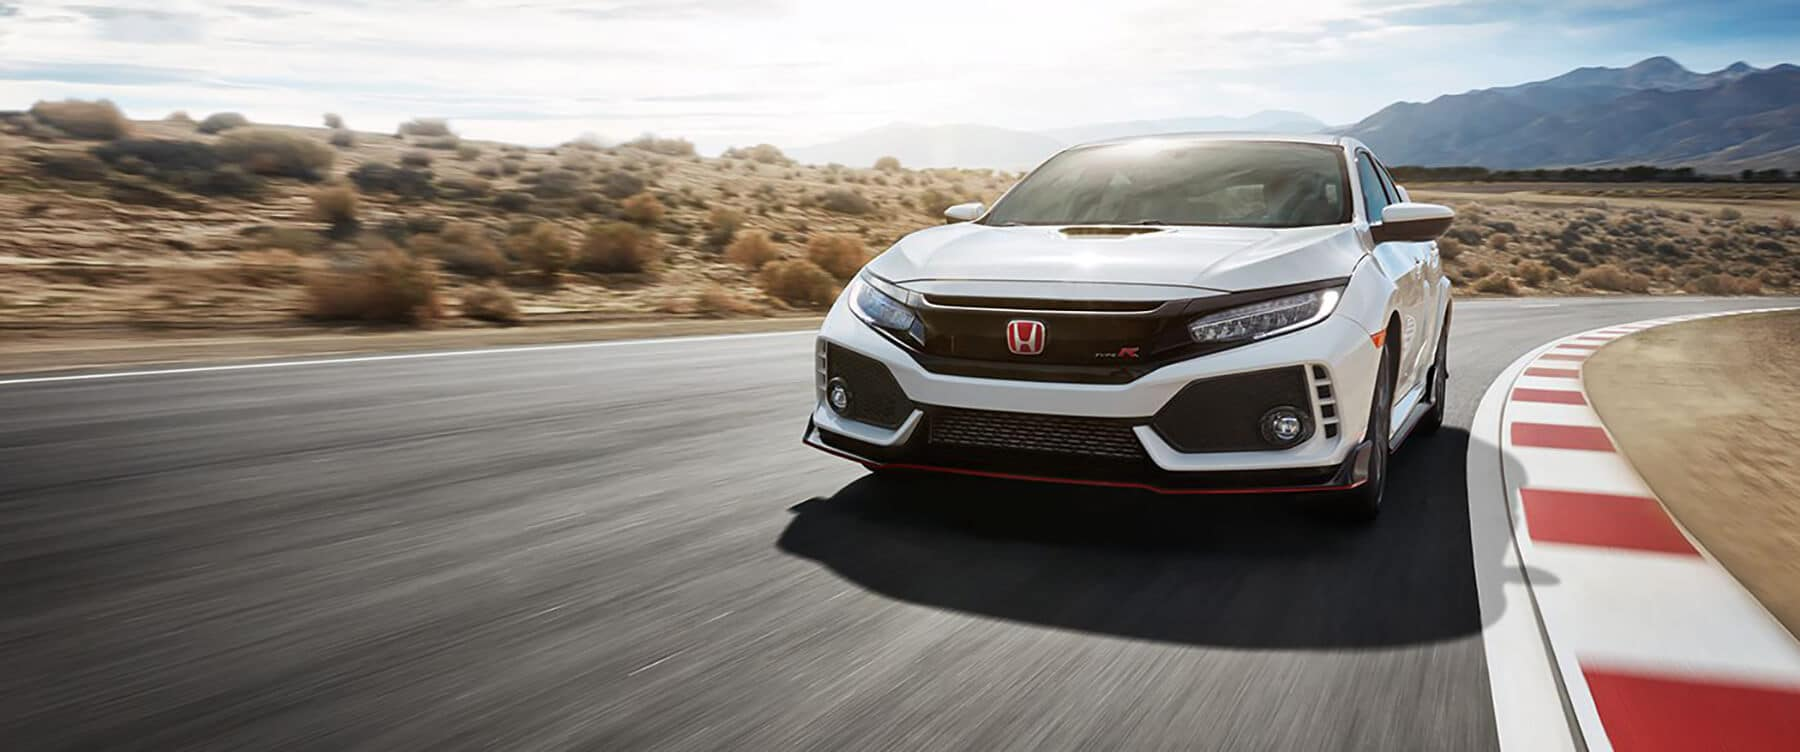 2017 Honda Civic Type-R Track